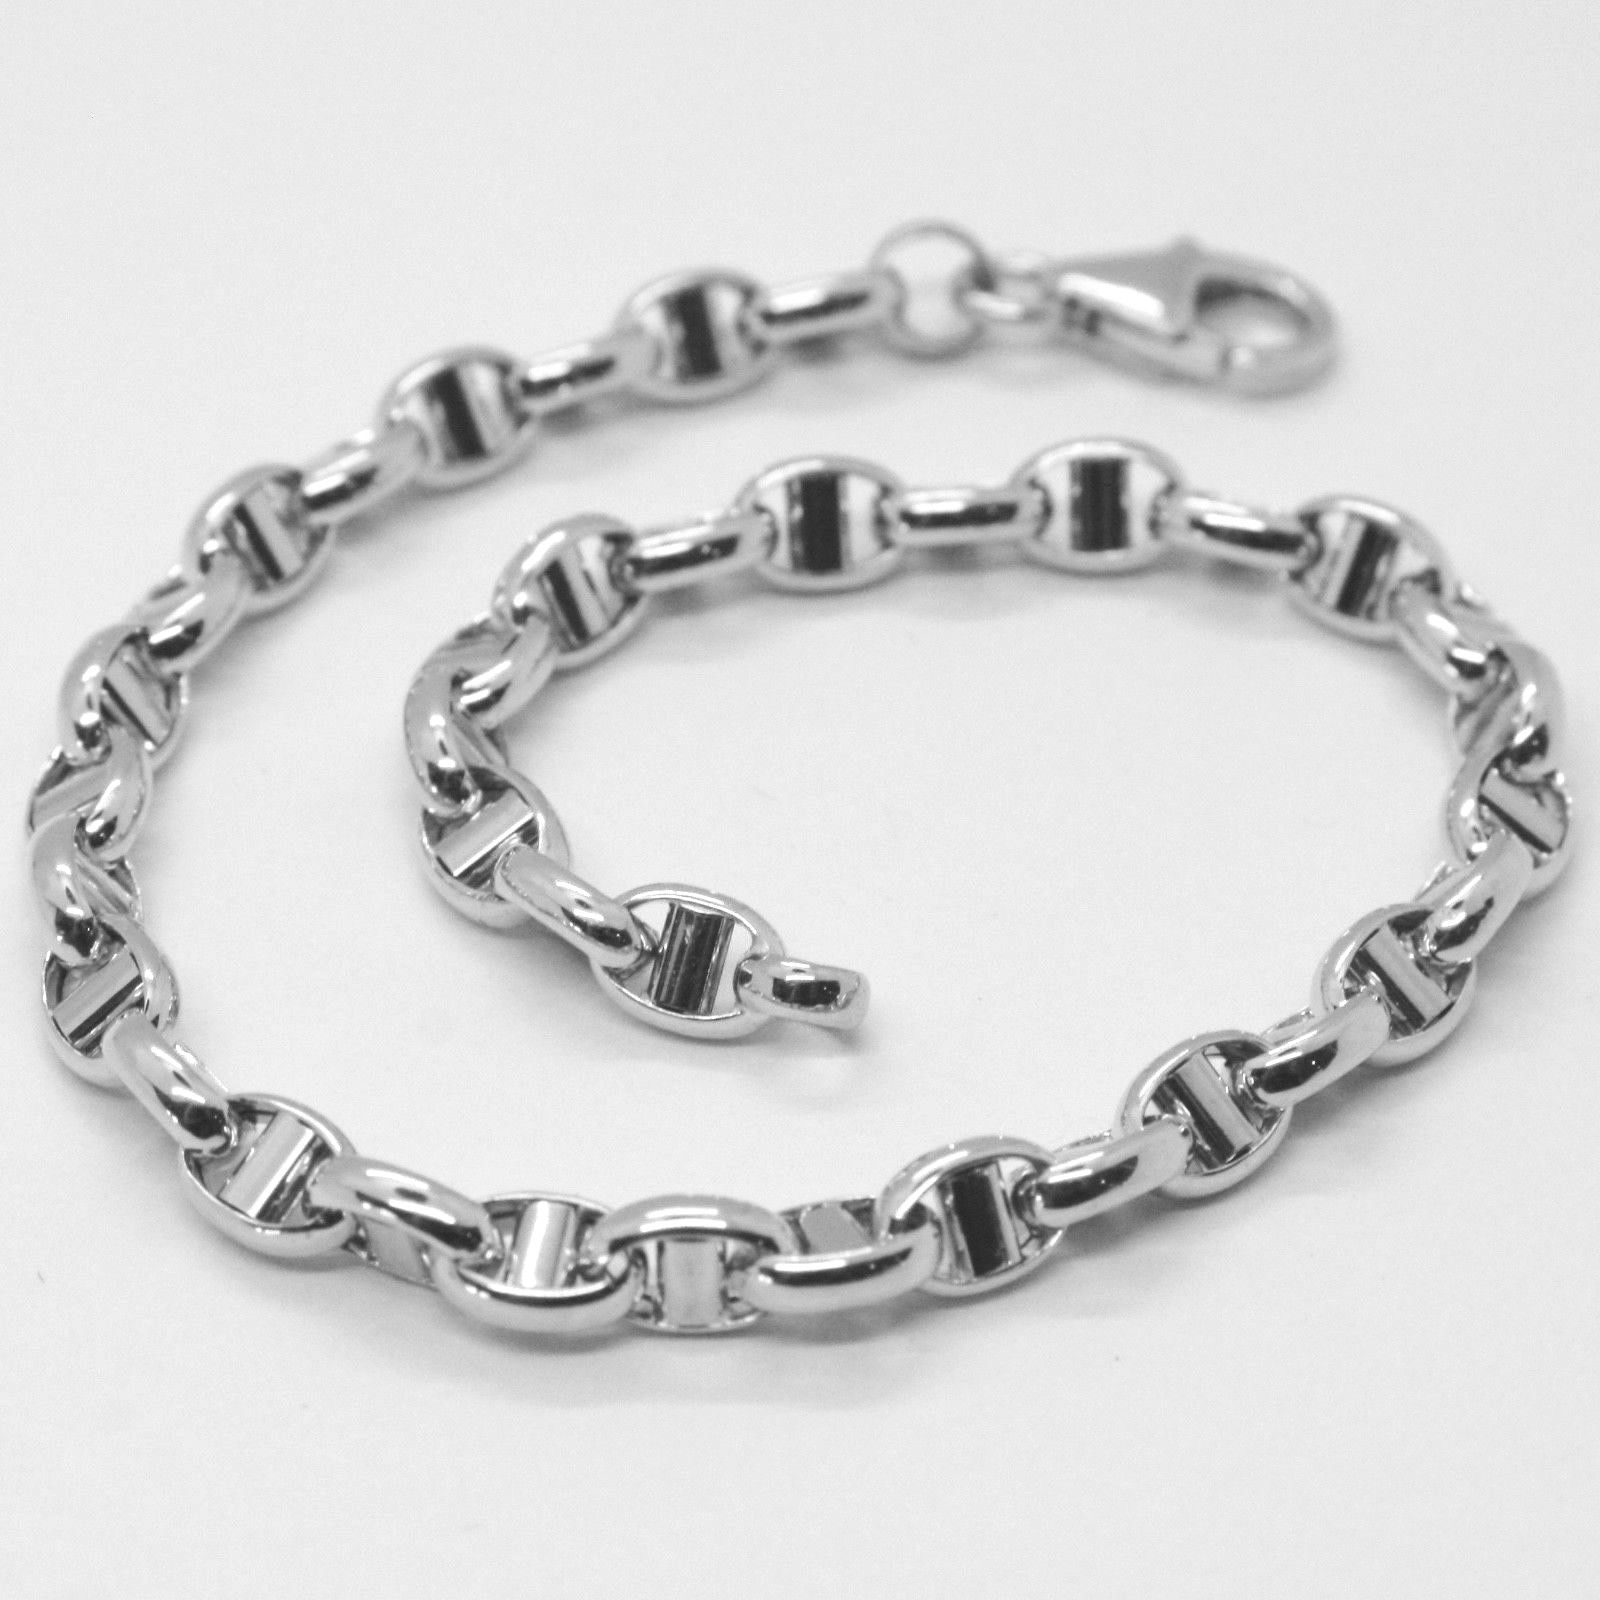 18K WHITE GOLD 4 MM OVAL NAVY MARINER BRACELET 7.50 INCHES, 19 CM, ITALY MADE